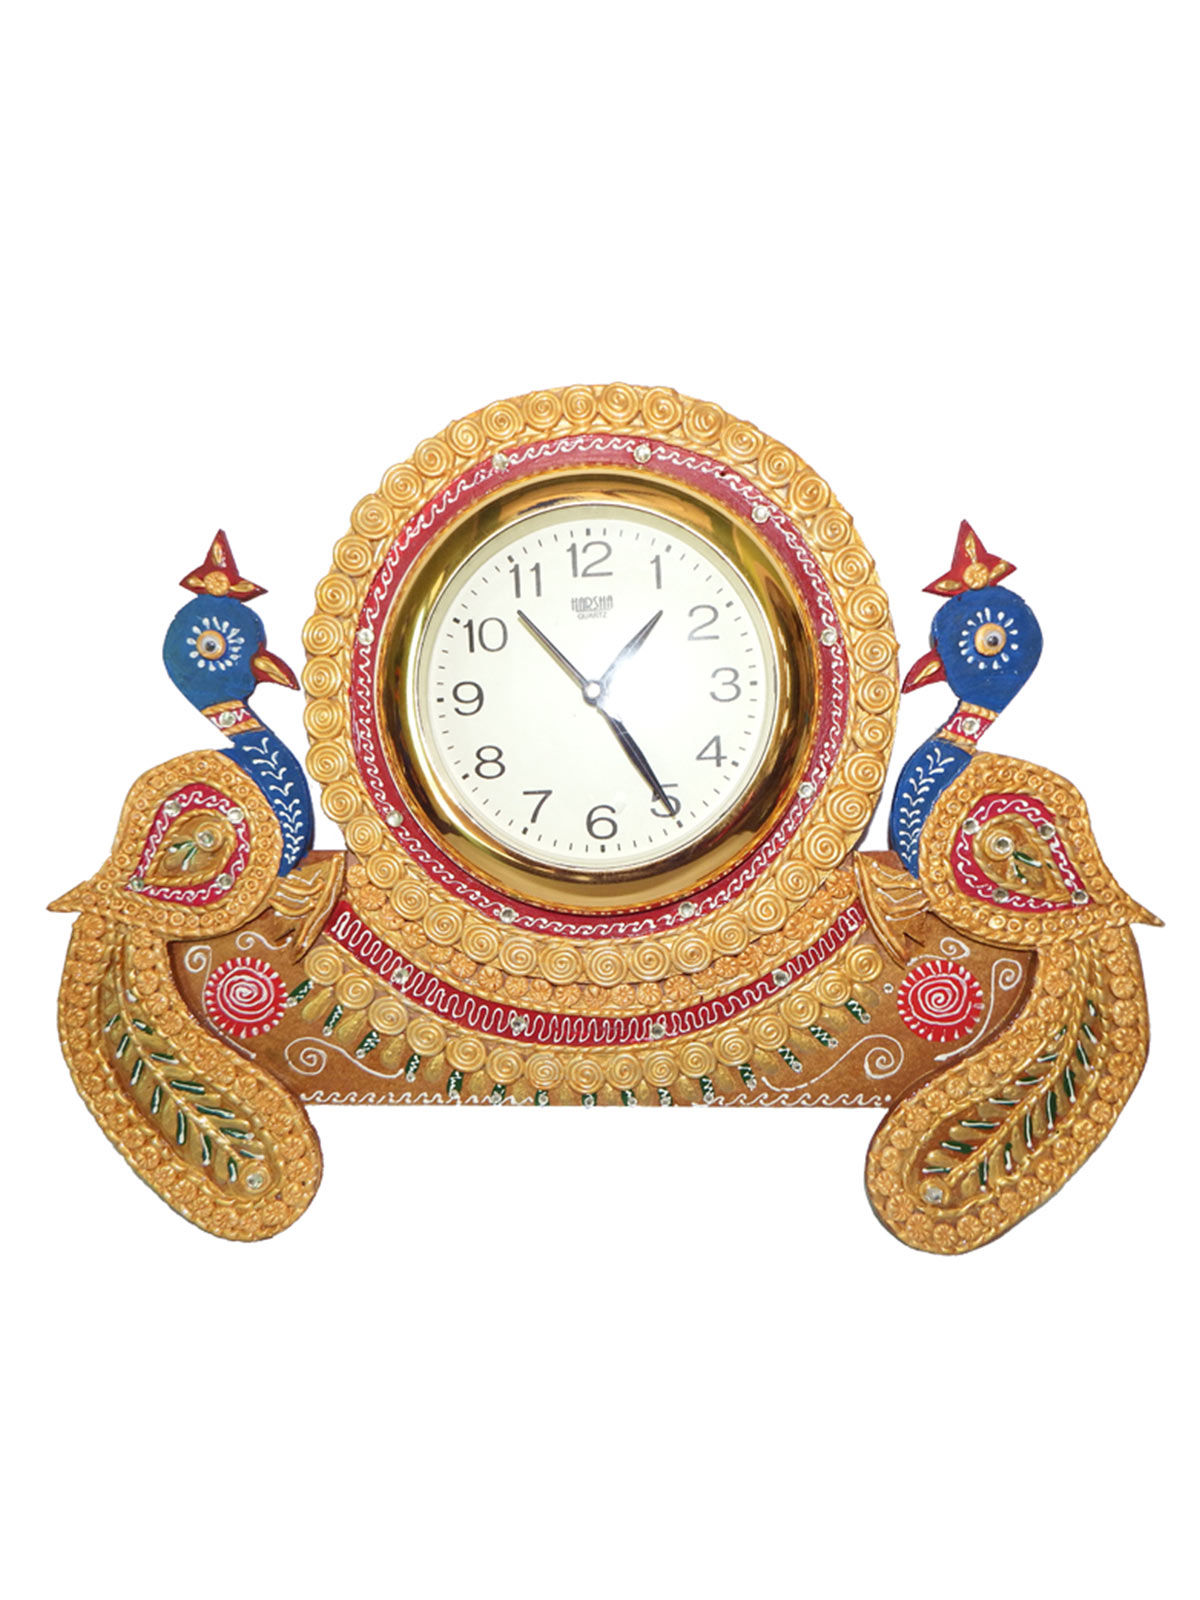 Craftszilla Handcrafted Double Peacock Analog Wall Clock